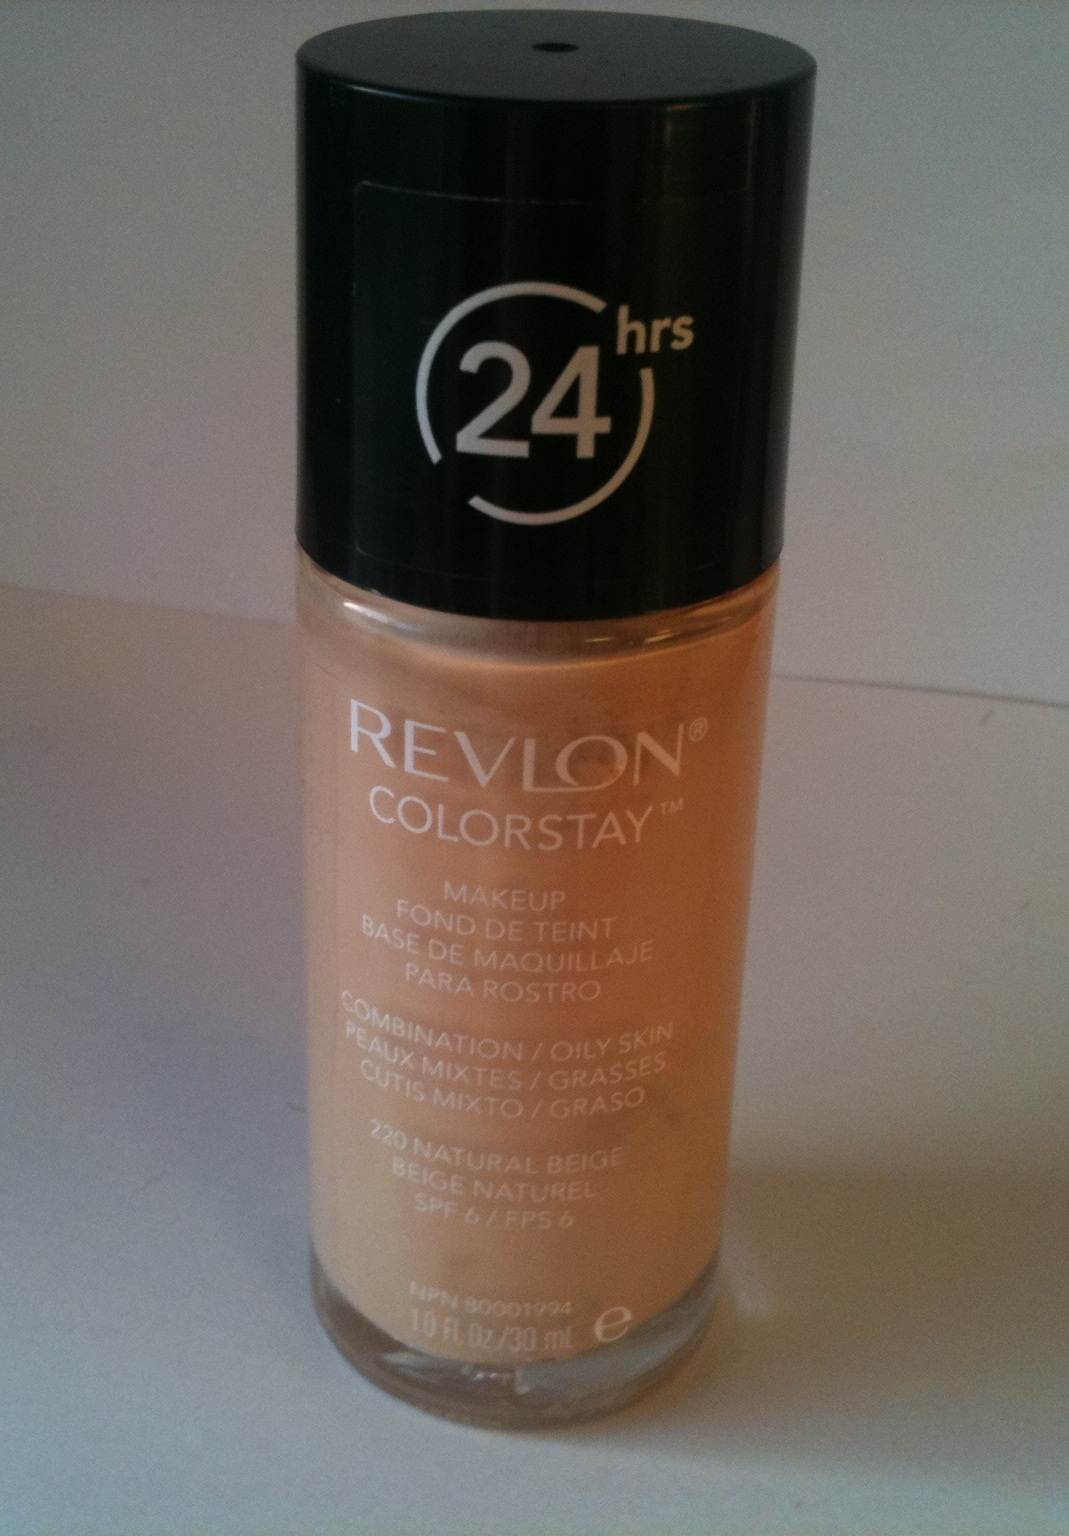 So i headed to Twitter, and most of you suggested the Revlon Colorstay foundation.